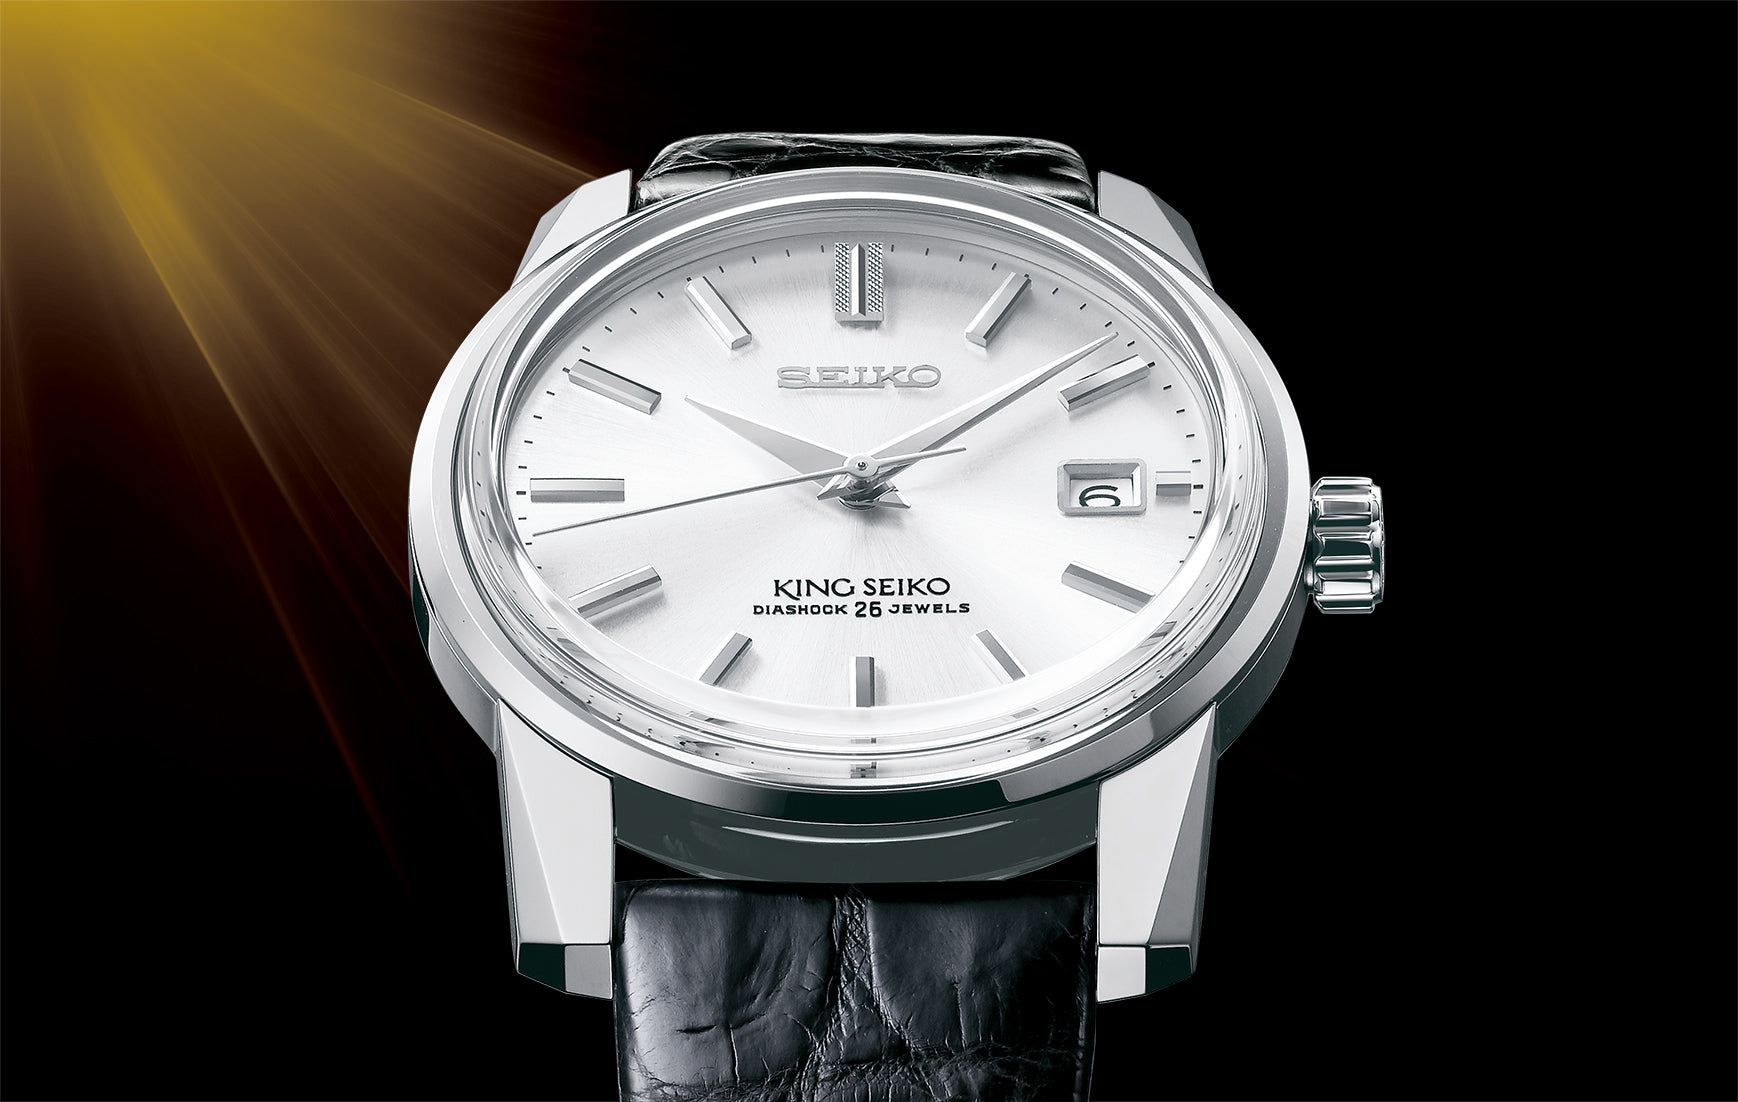 King Seiko. A 1965 classic is re-born in celebration of Seiko's 140th anniversary.